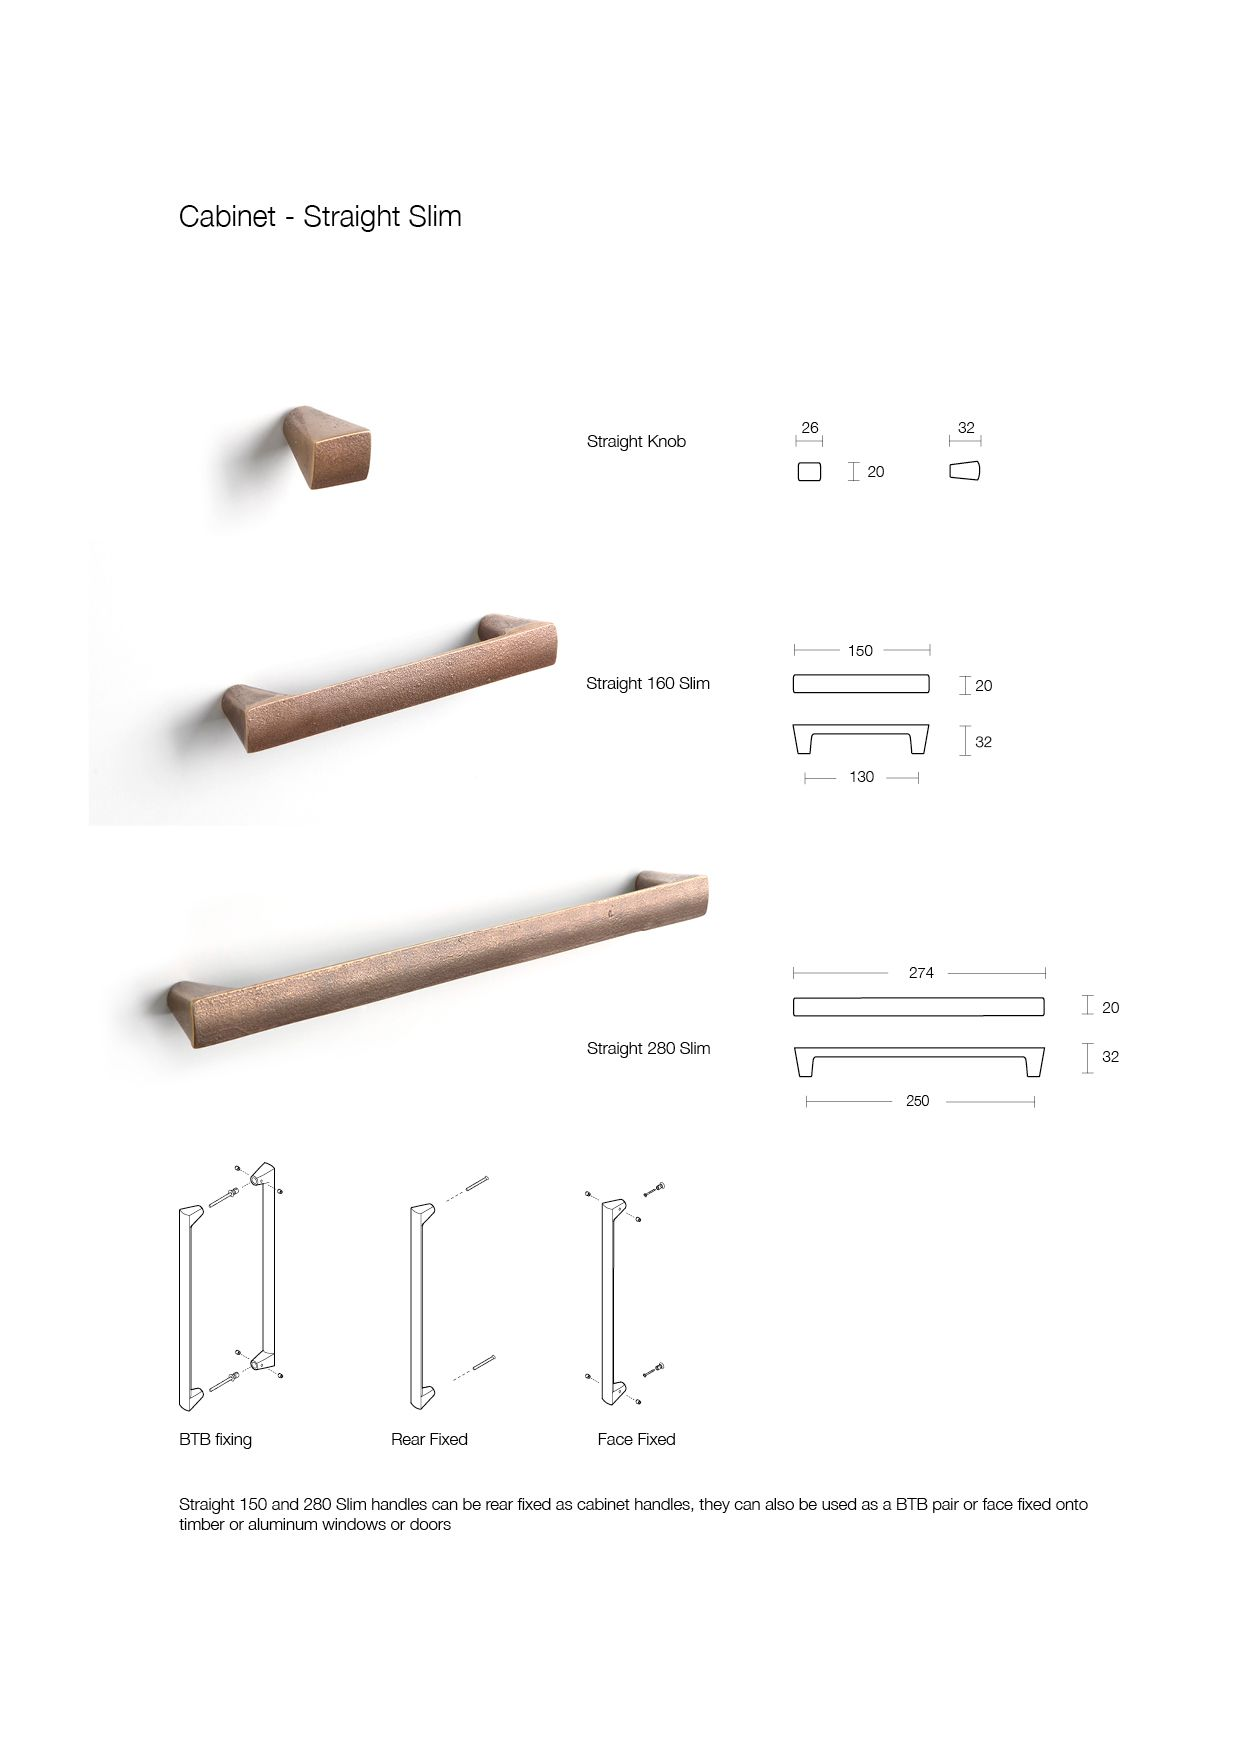 bronze cabinet handles, showing dimensions and fitting instructions